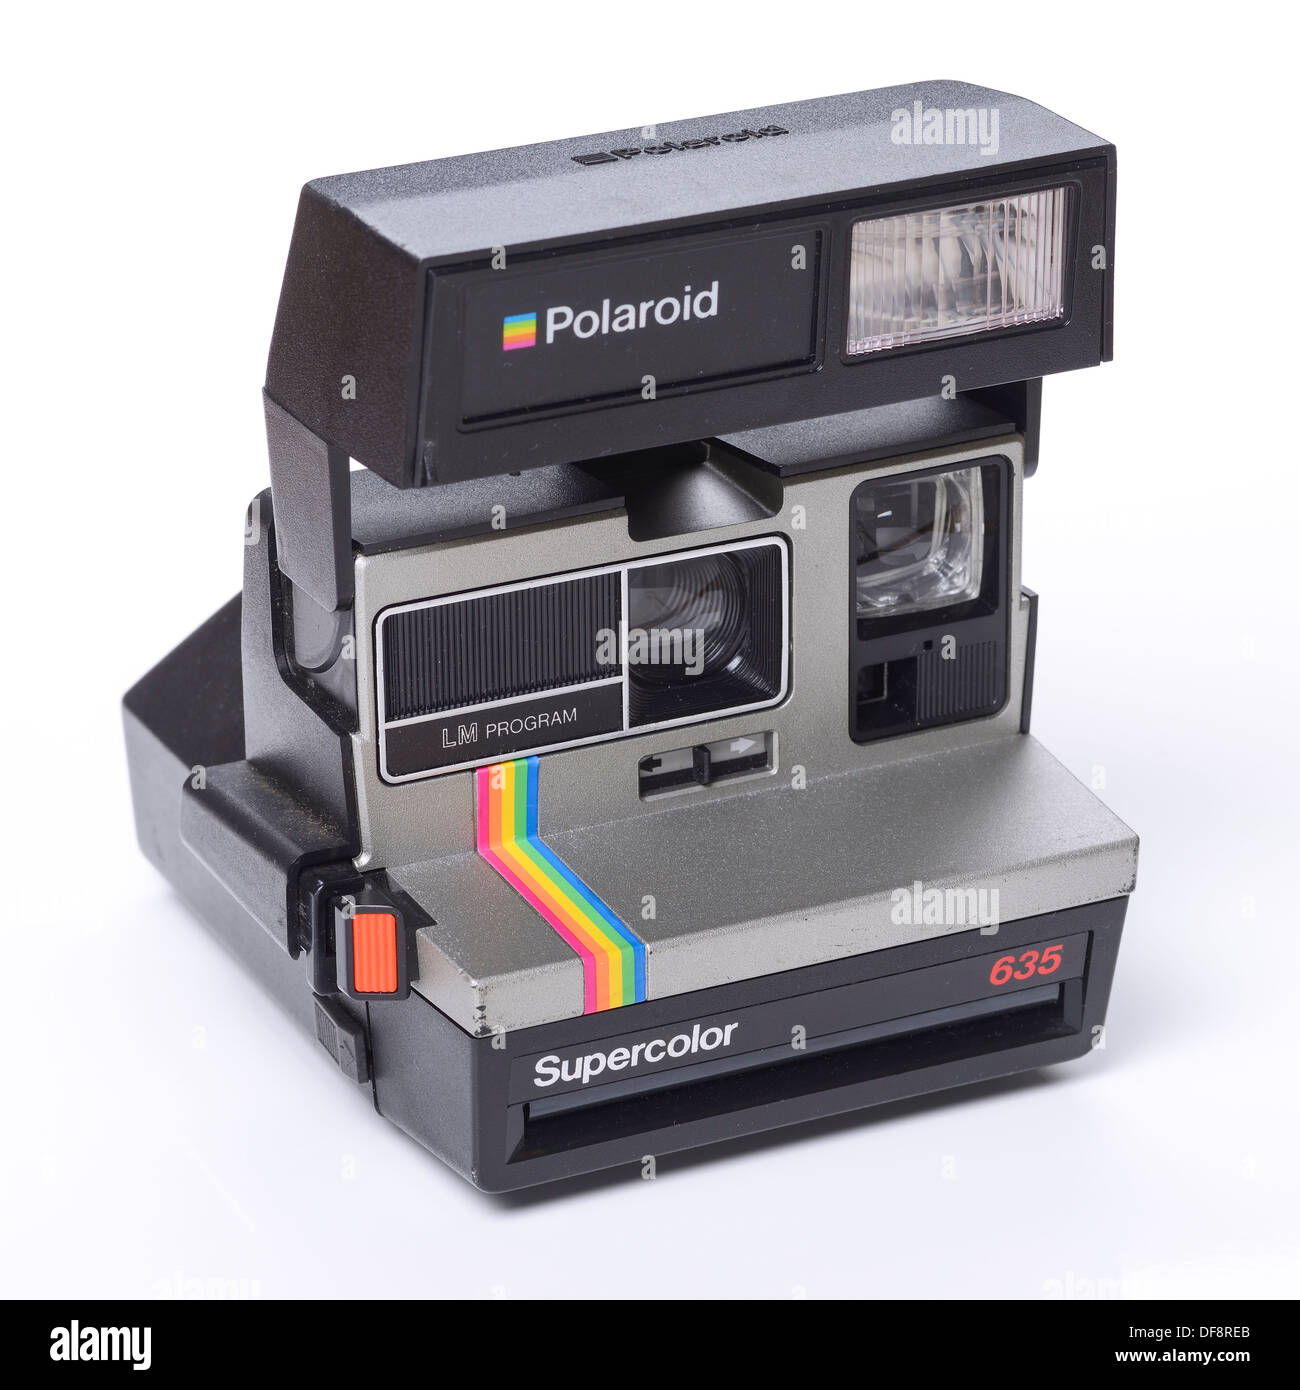 https www alamyimages fr ancienne retro vintage appareil photo instantane polaroid supercolor image61044995 html